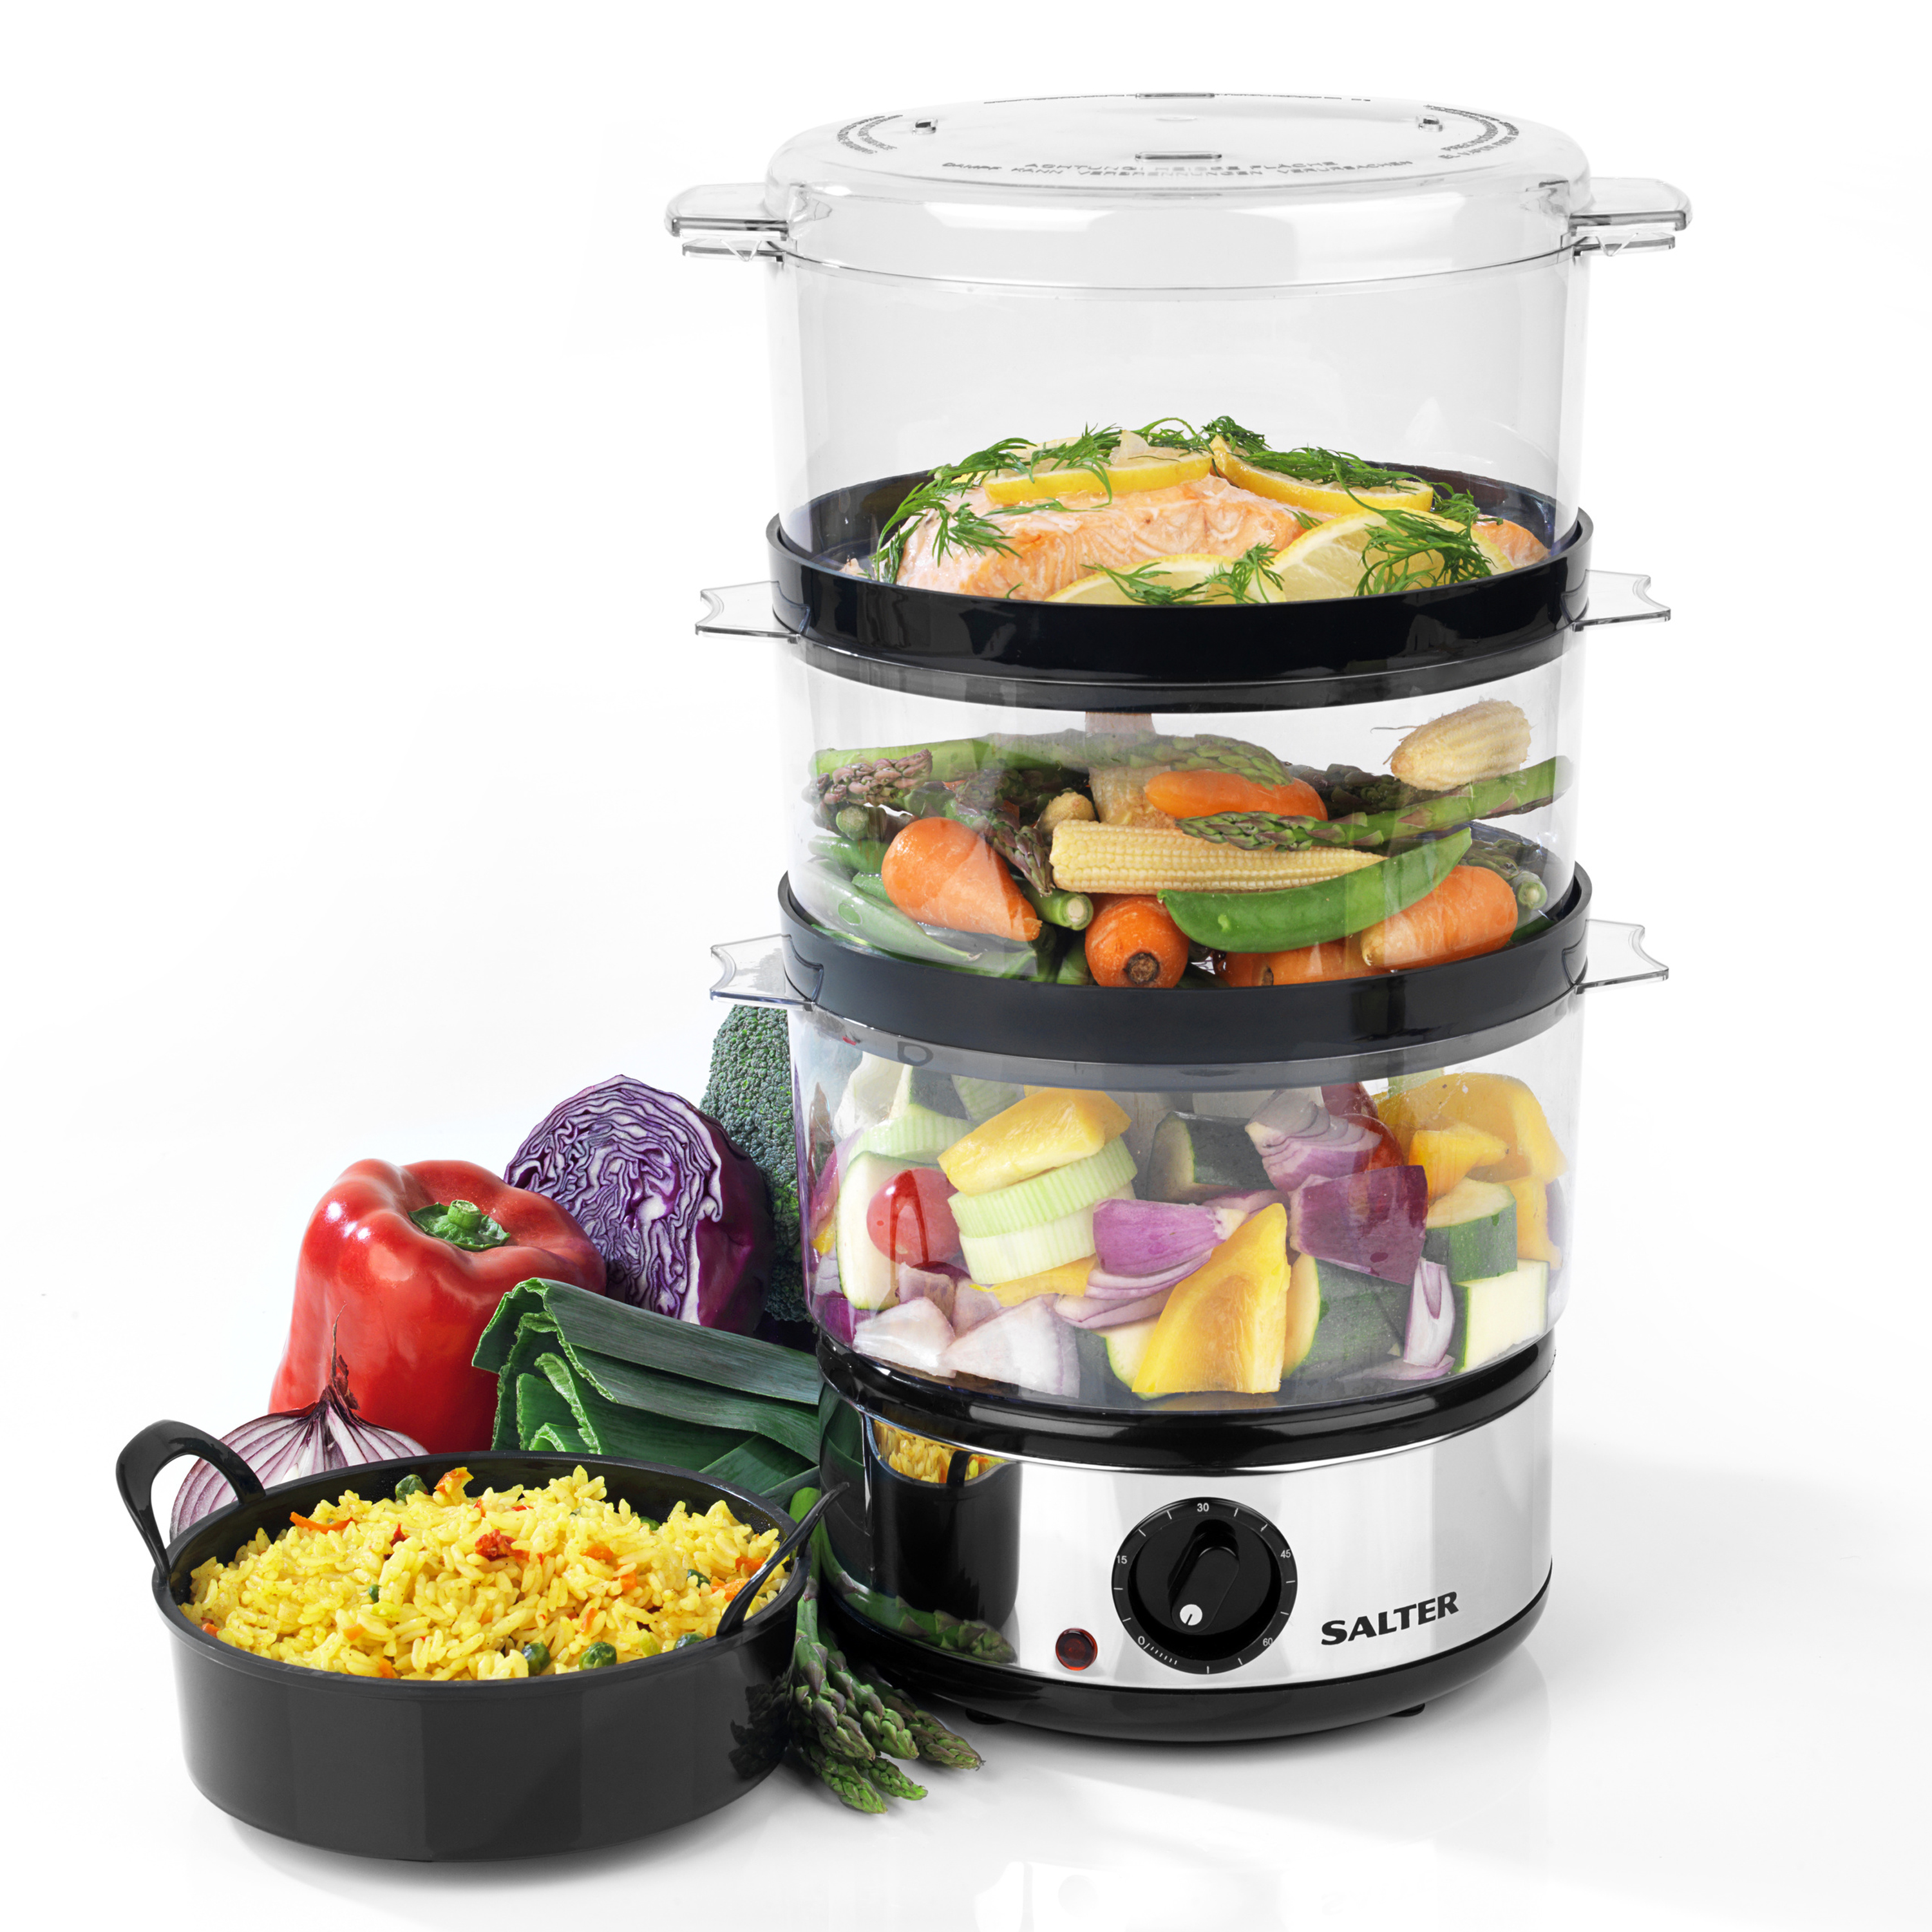 Captivating Salter Healthy Cooking 3 Tier Food Rice Meat Vegetable Steamer, 7 Litre, 400